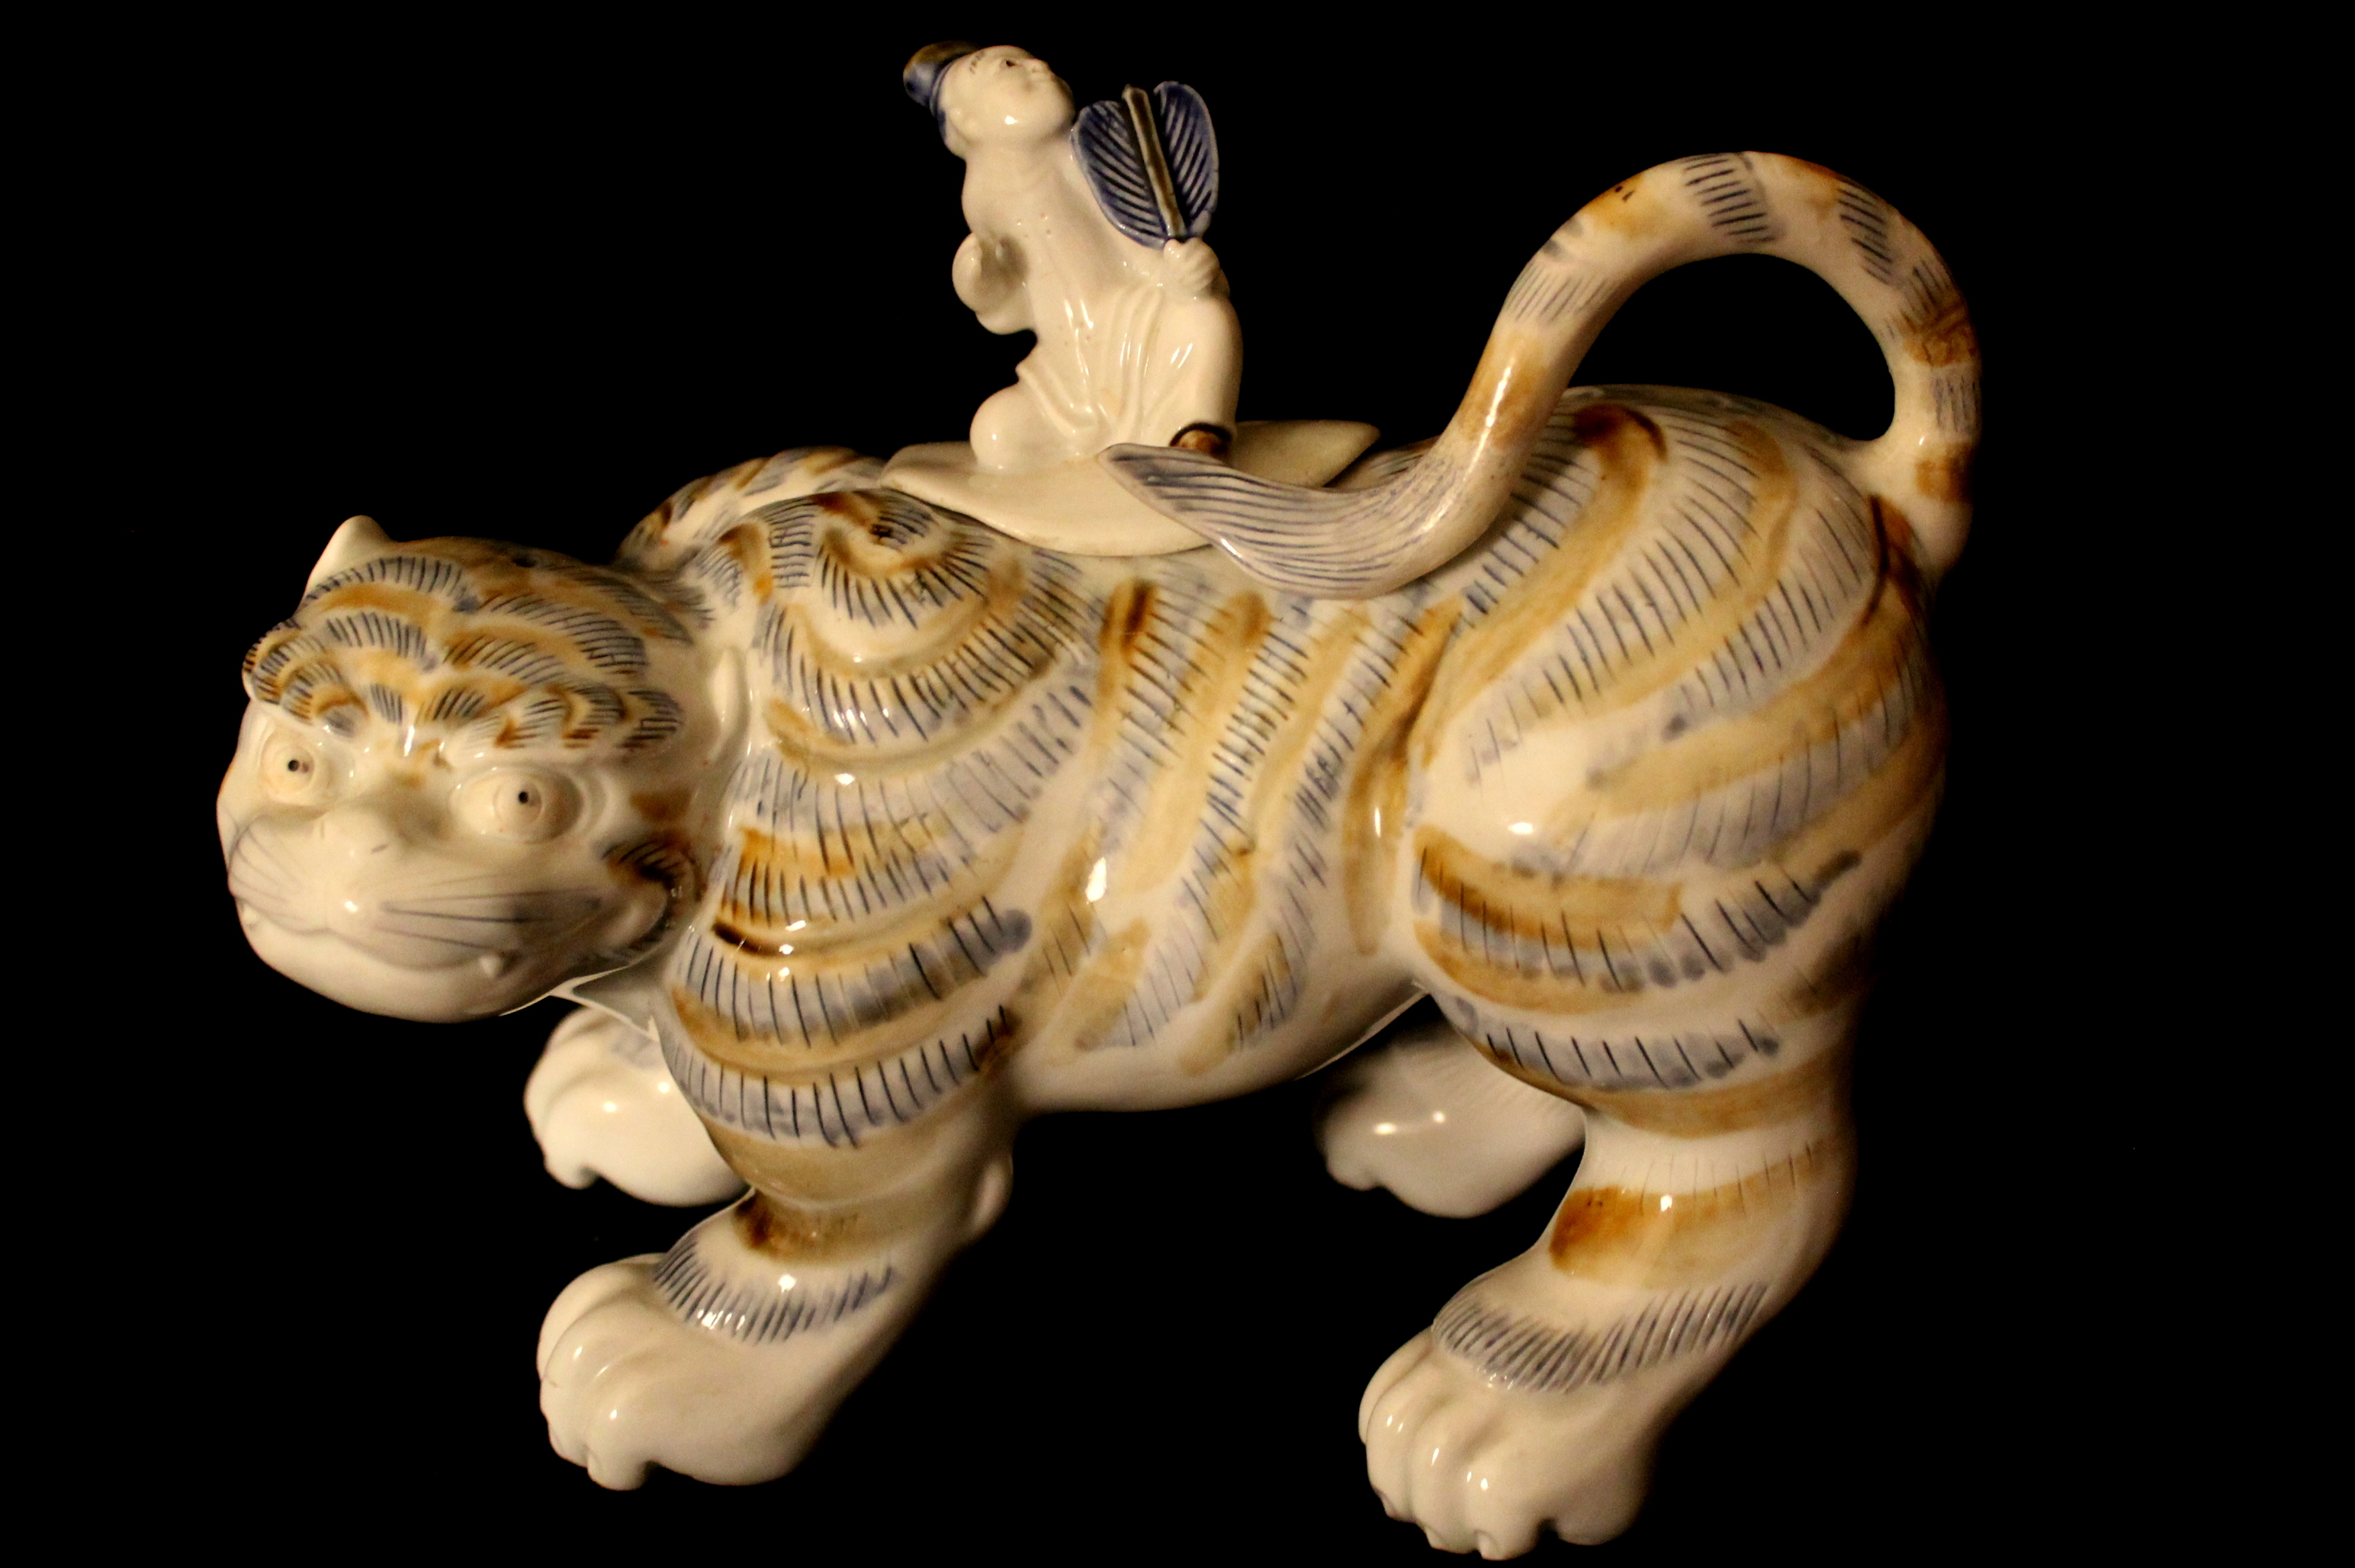 Hirado, Mikawachi ware porcelain censer in form of Tiger and cover modeled figurine with fan, brown and blue glazes , Japan